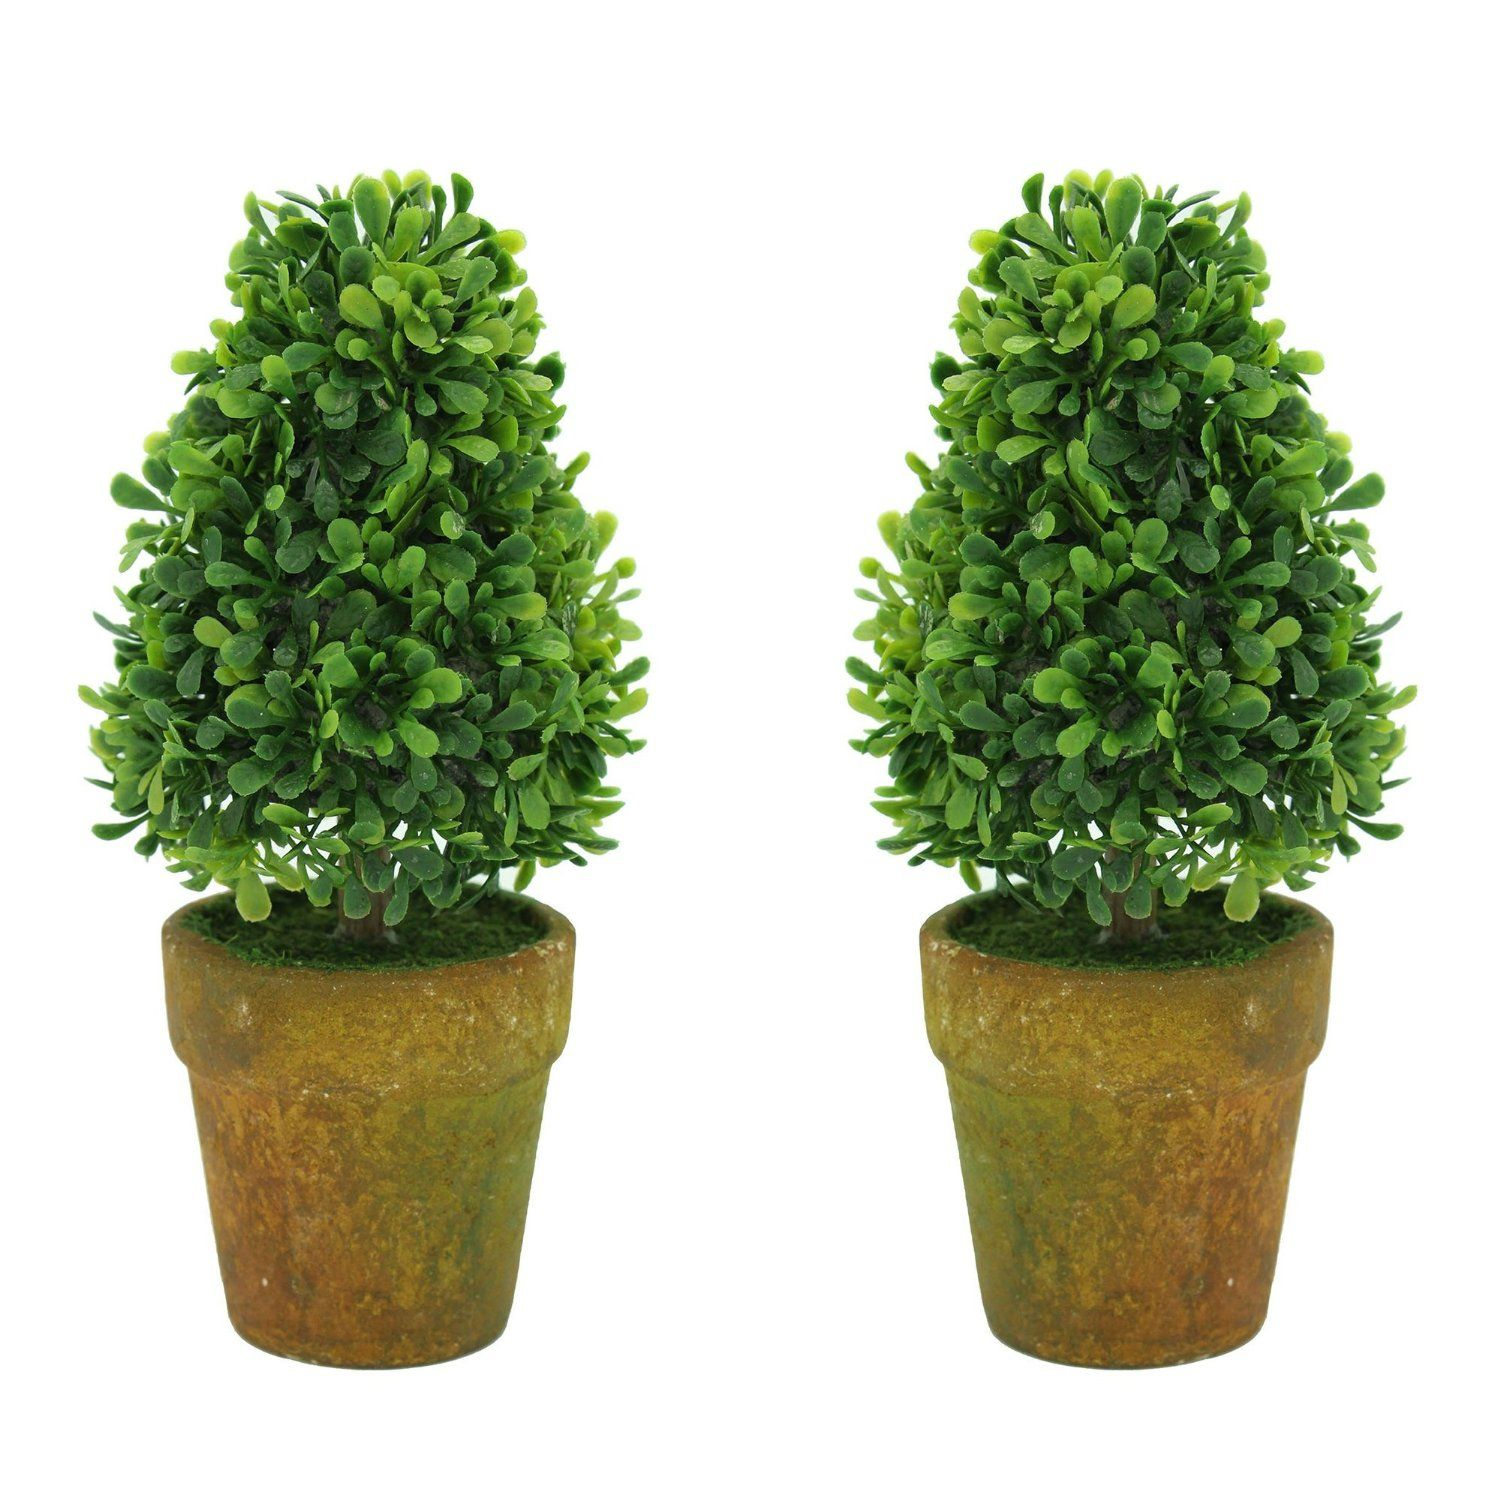 Keelorn Cute Tower Shape Greenery Artificial Plants and Trees , Decor Bonsai for Office , Home Decorations , Desks and Tables Decor ( Set of 2 , 6 Inches , Green ) >>> Want to know more, click on the image.